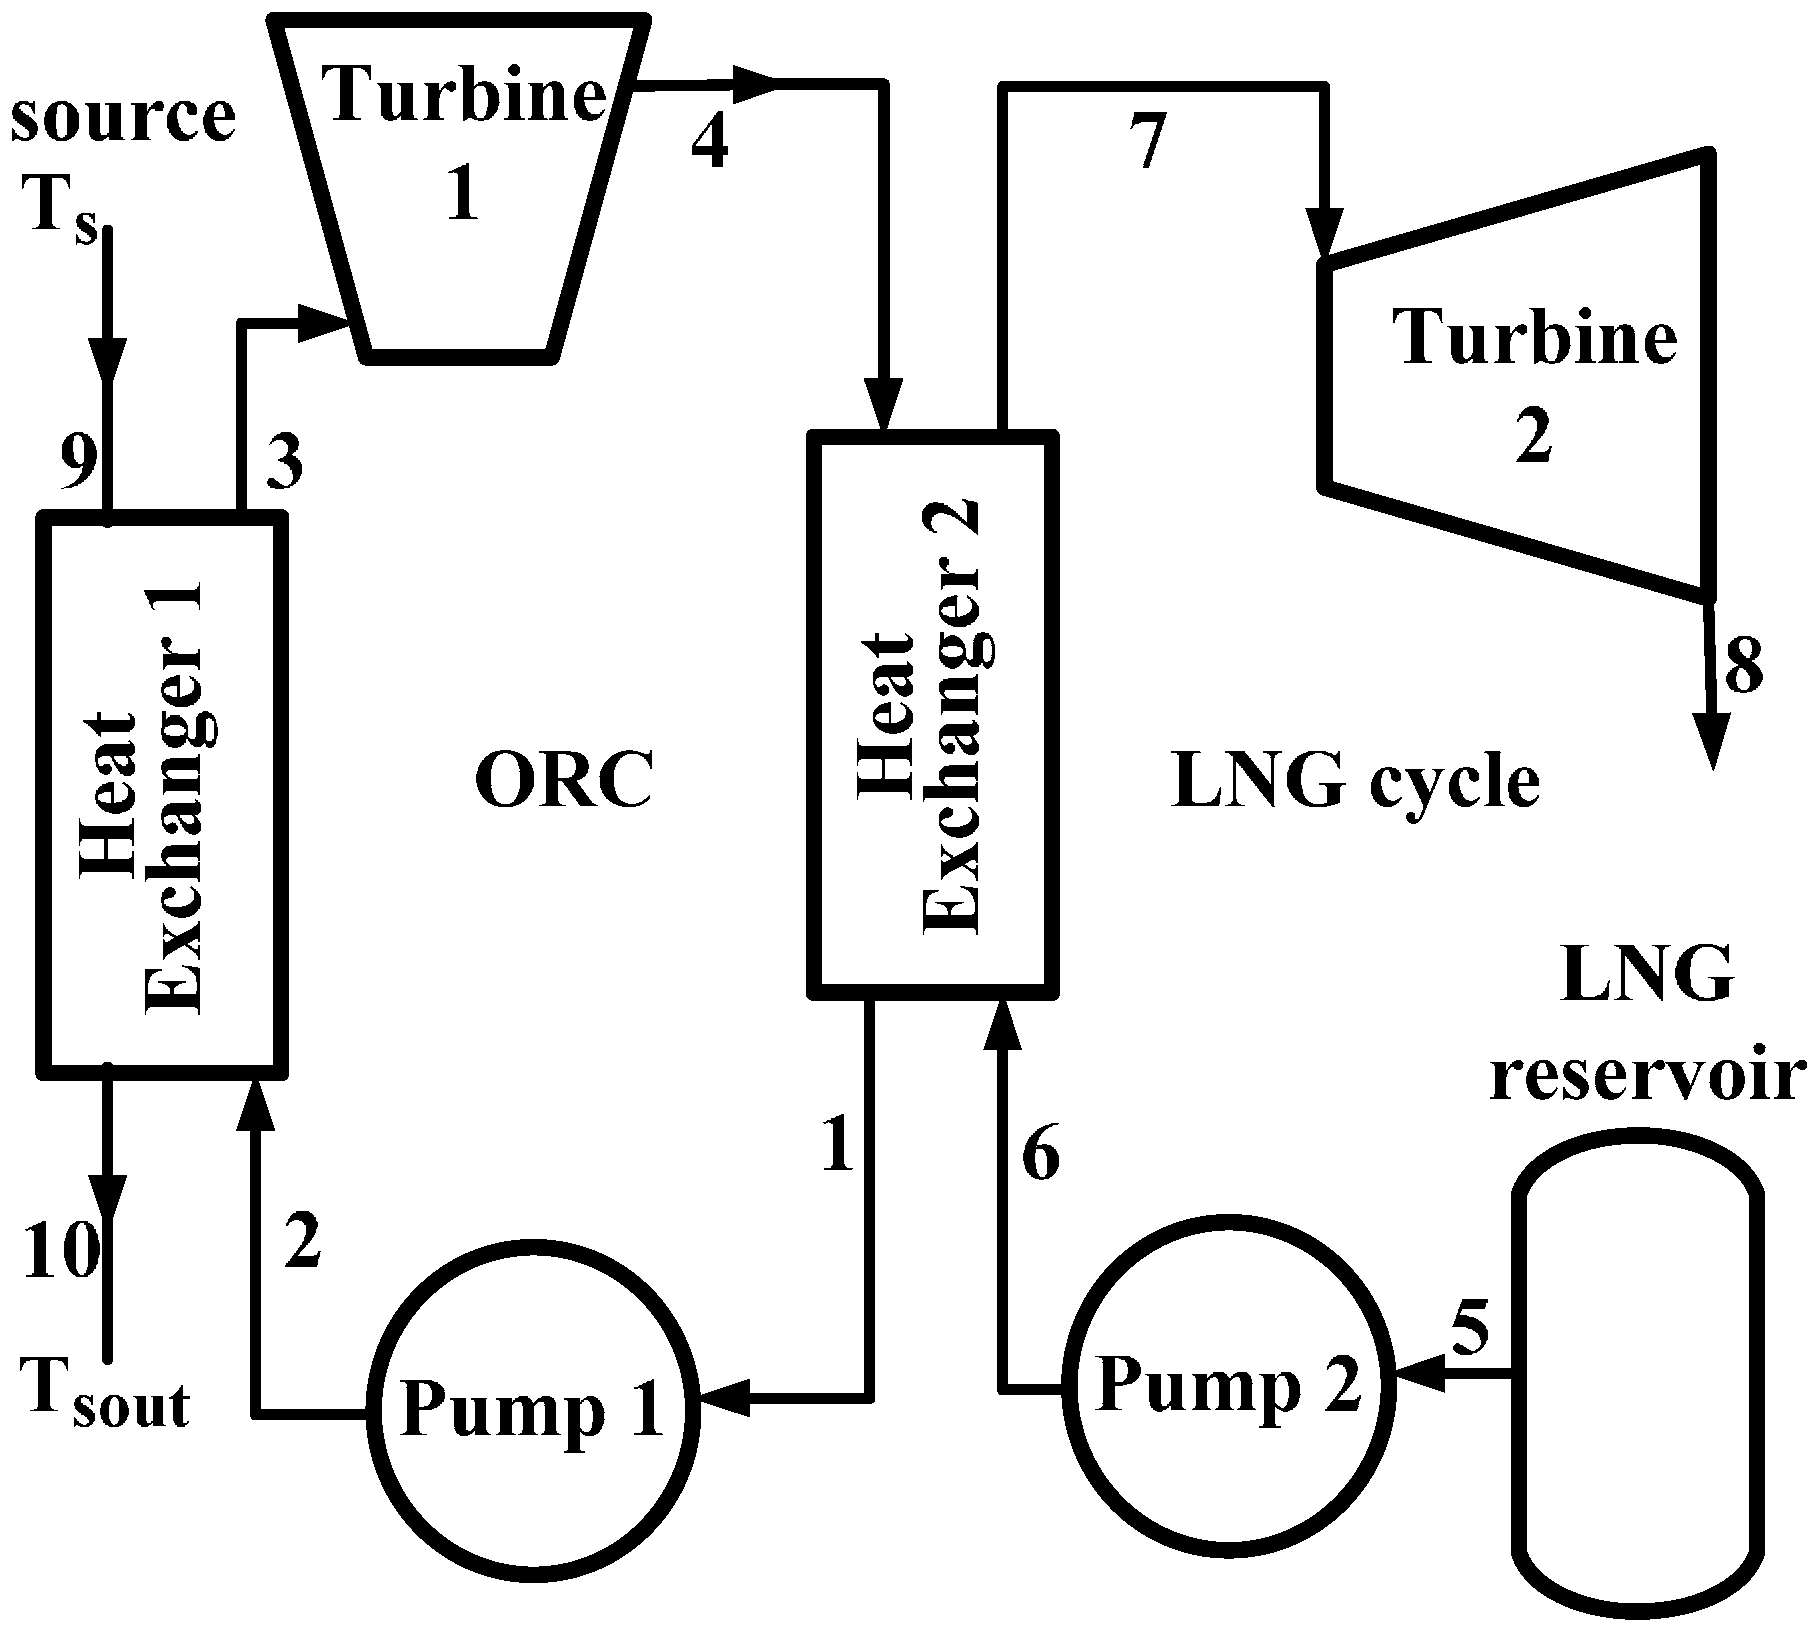 diagram of a gas station drawing